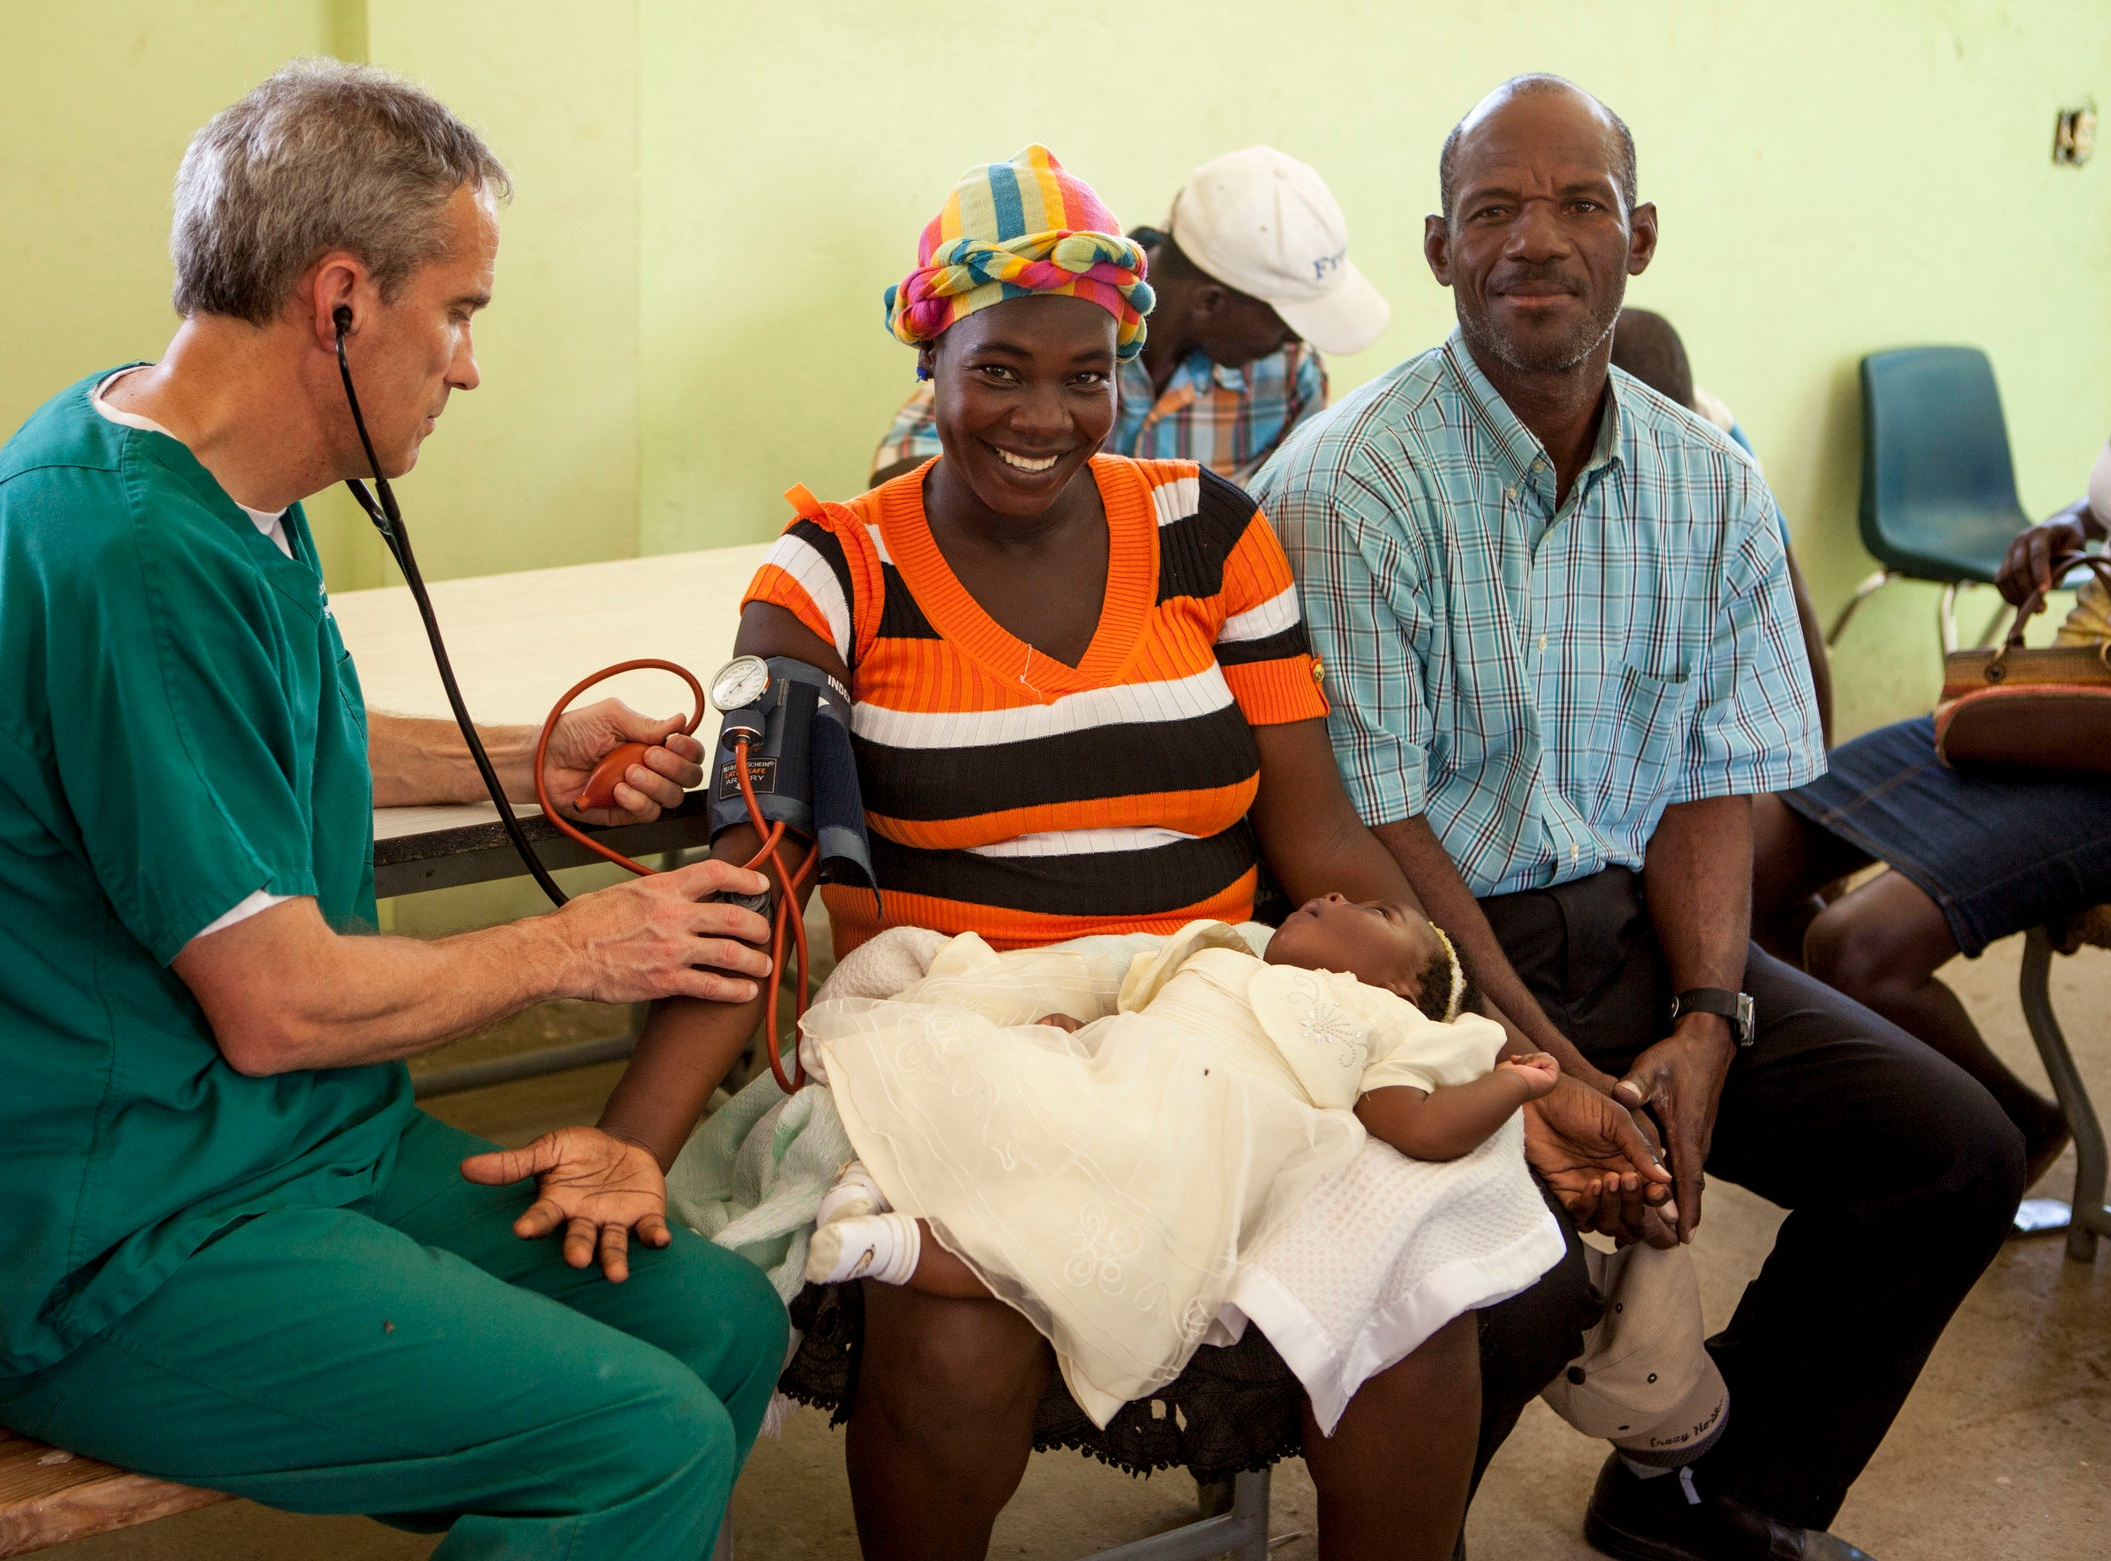 THROUGH OUR MEDICAL TRIPS, - an average of 1,300 to 1,500 patients are treated annually.